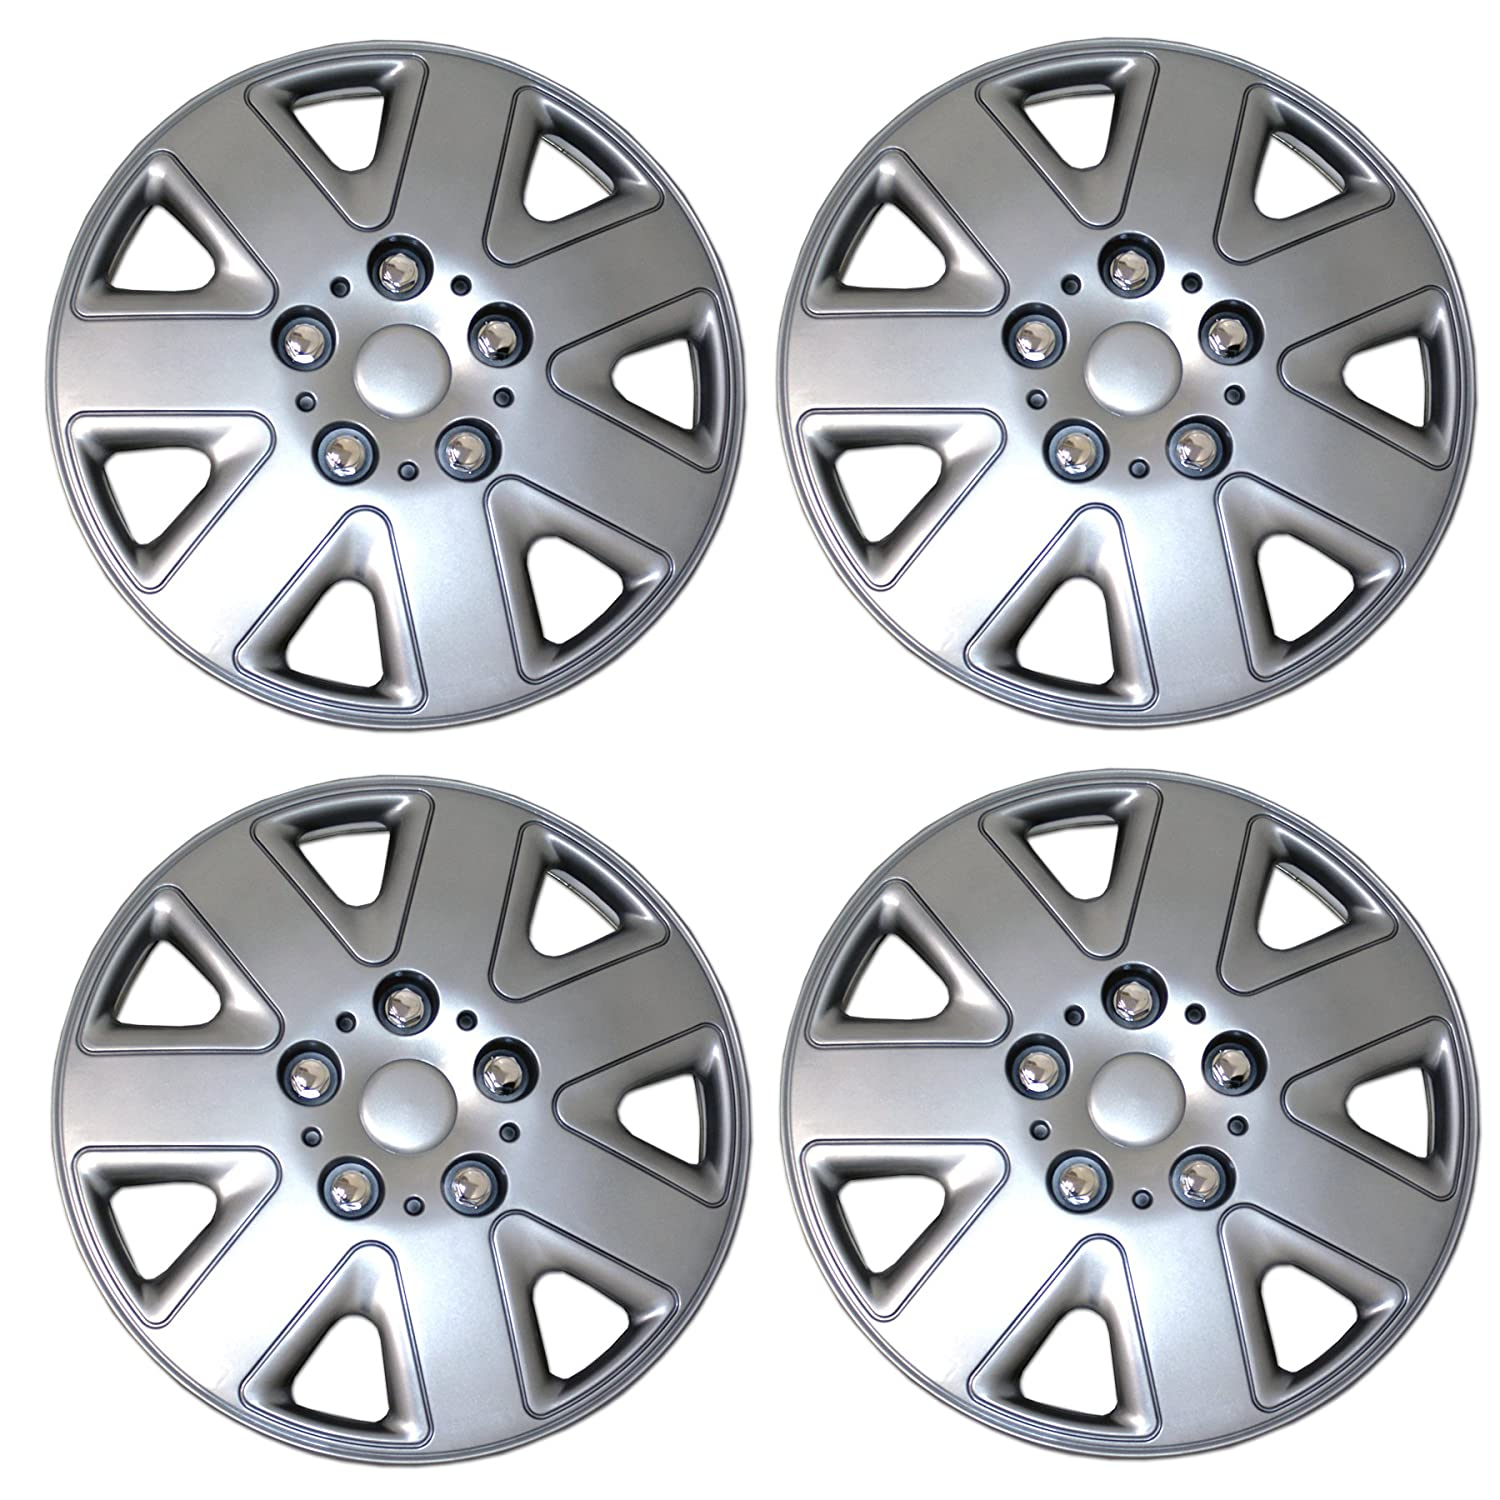 TuningPros WSC3-026S16 4pcs Set Snap-On Type (Pop-On) 16-Inches Metallic Silver Hubcaps Wheel Cover